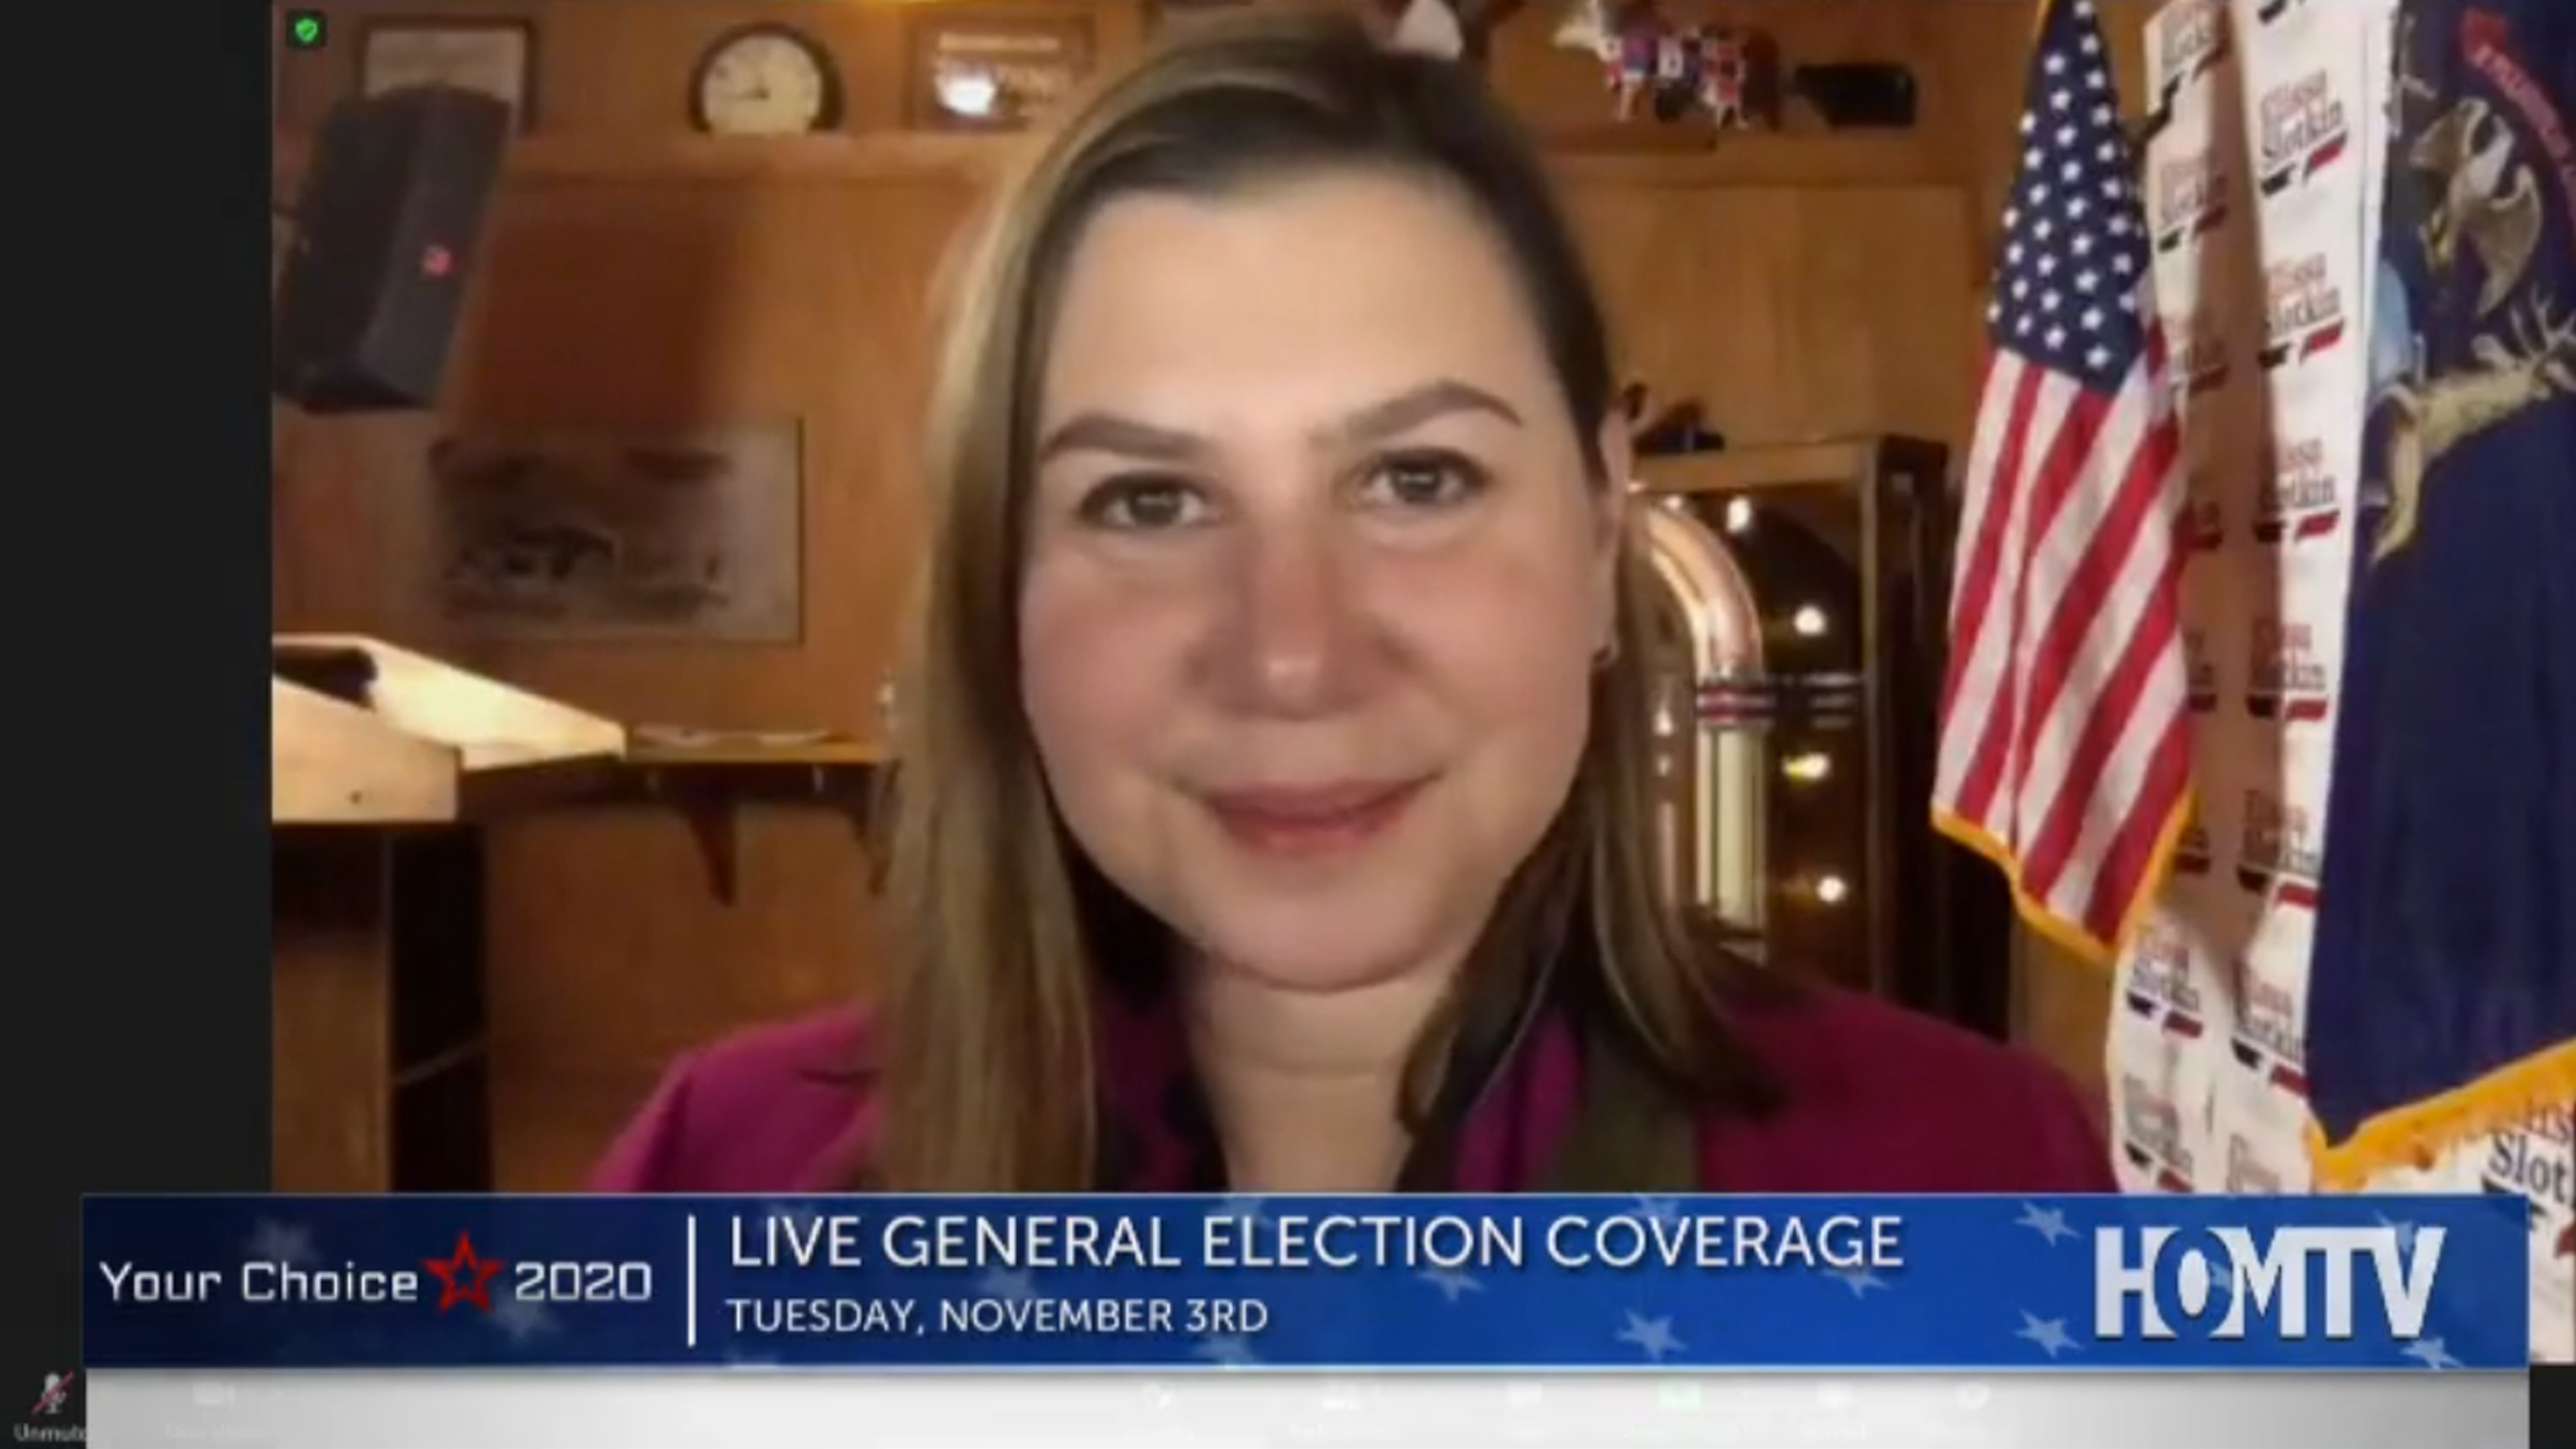 Elissa Slotkin Wins Reelection and Addresses Healing Our Country